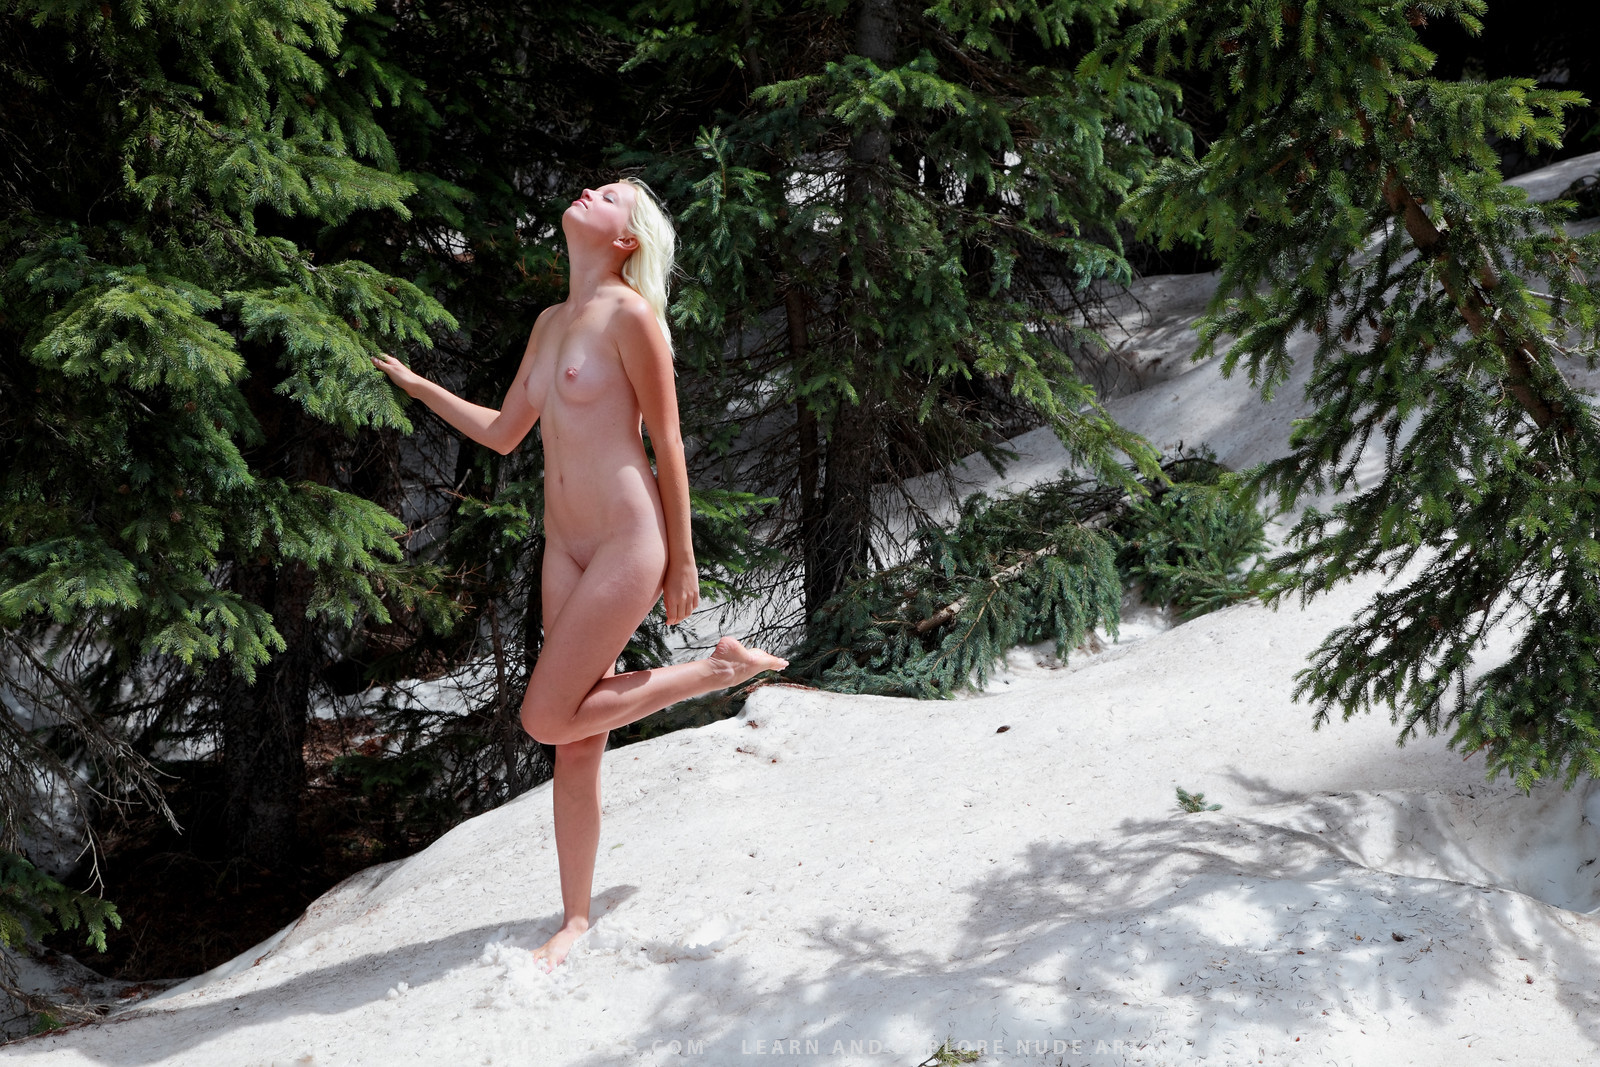 Girl nude in snow exploited video